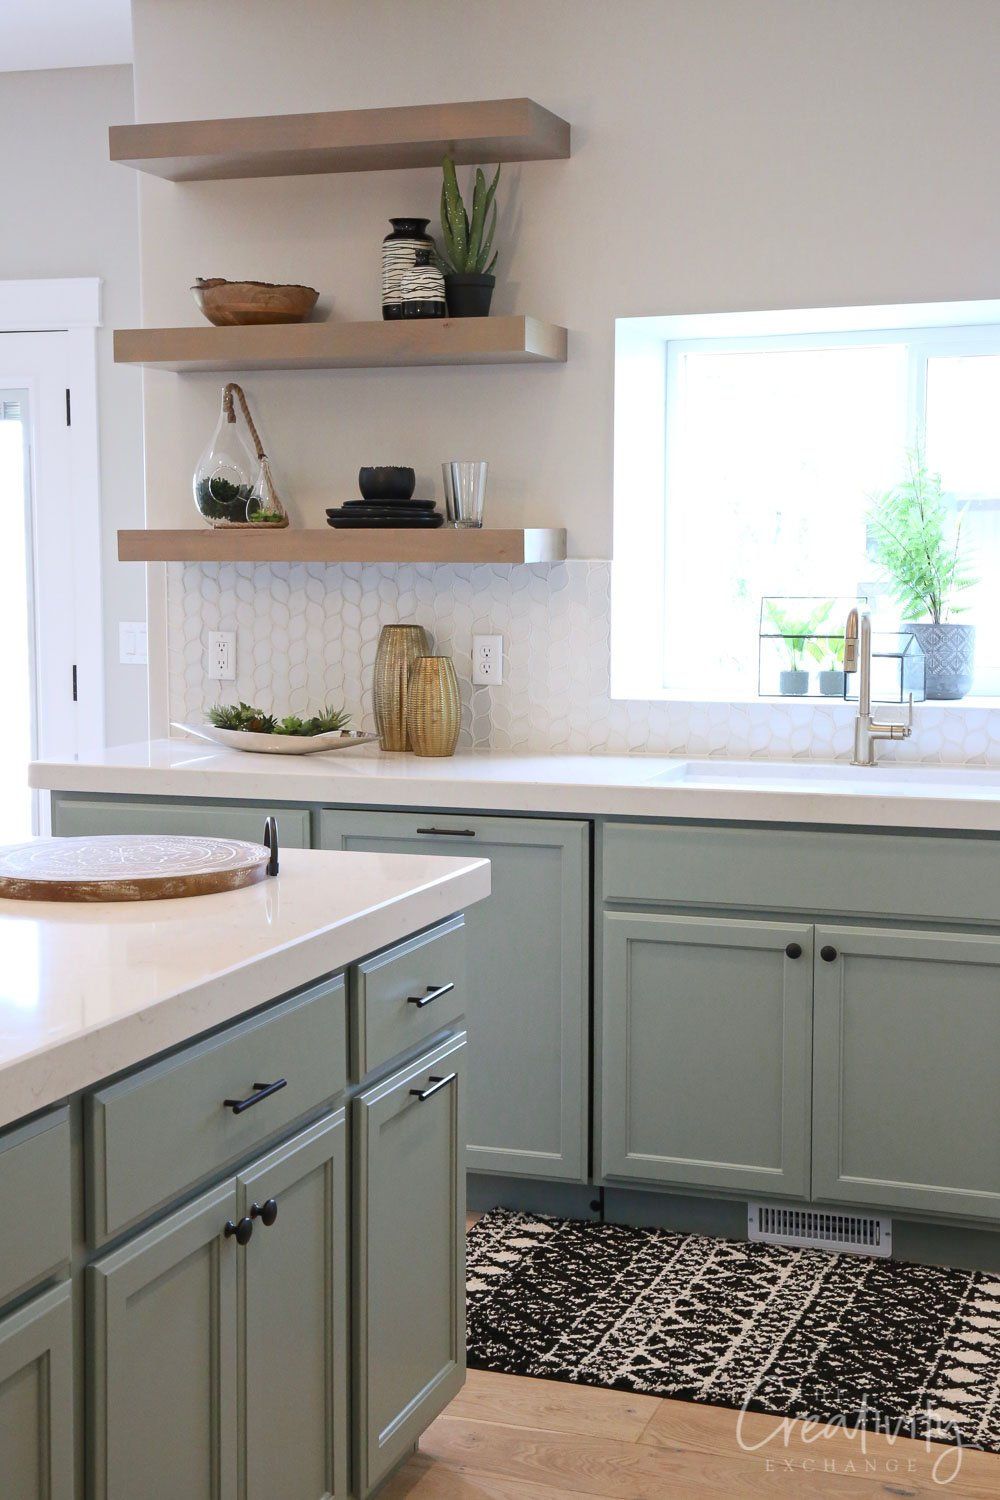 Kitchen lower cabinet color is Sherwin Williams Acacia Haze